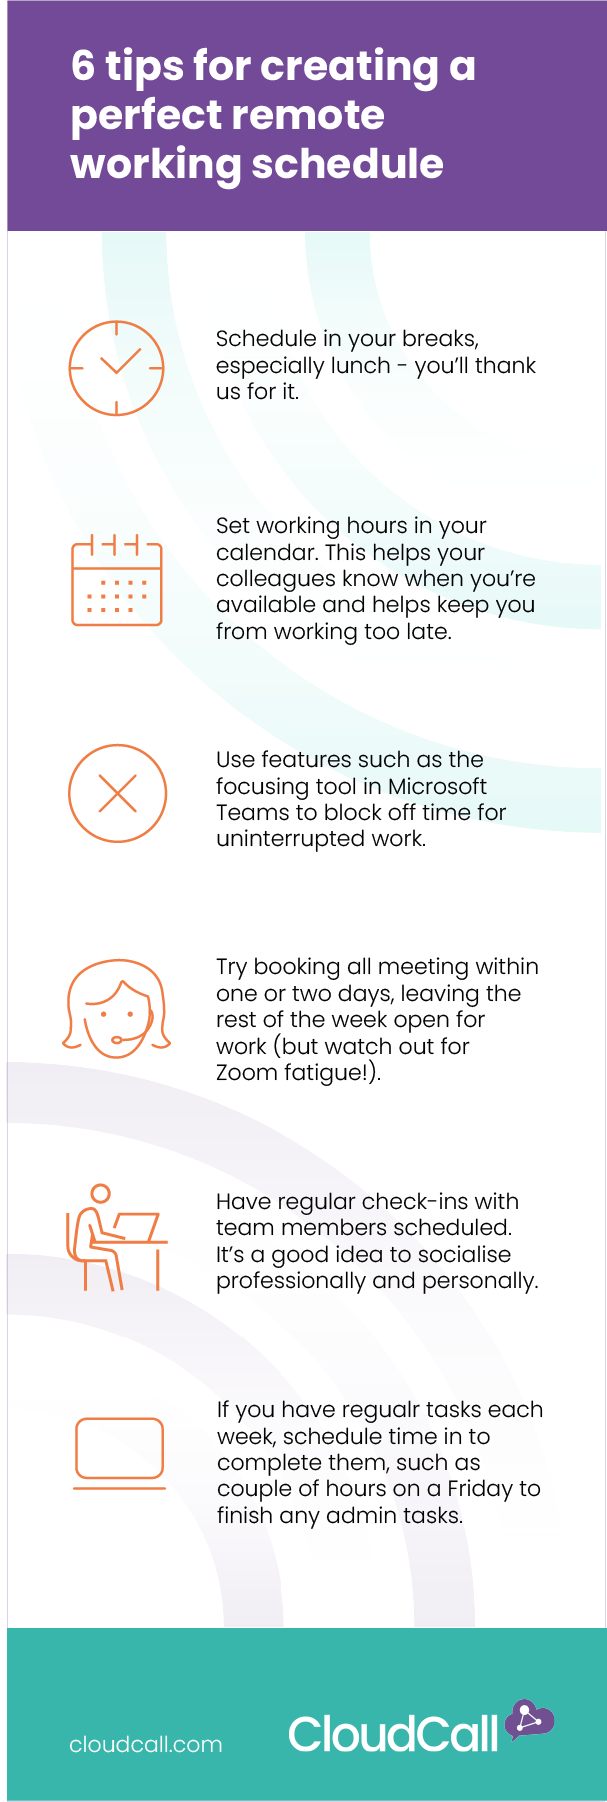 6 tips for mastering your remote working schedule infog